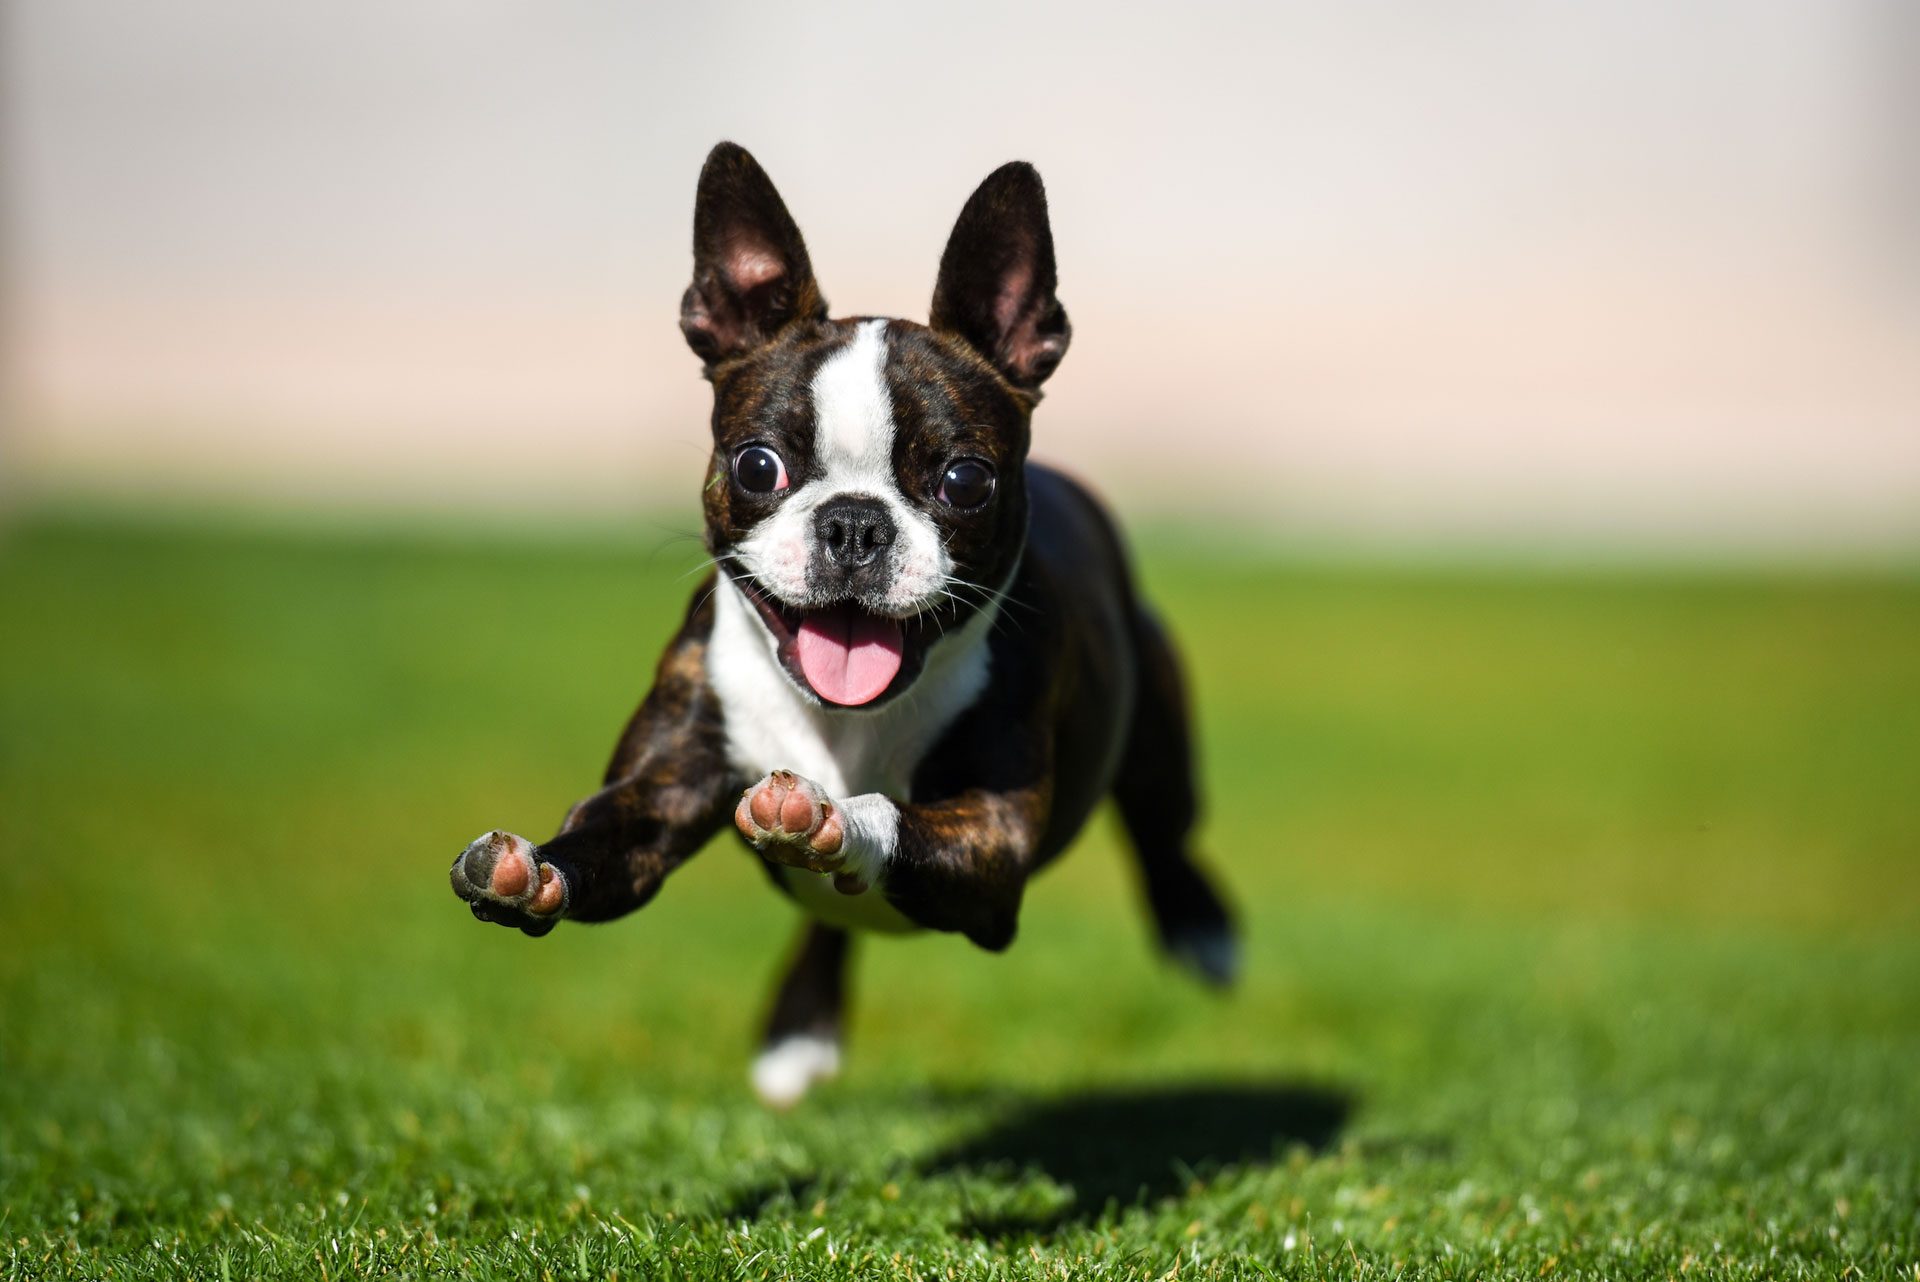 Happy dog running on grass after taking Clomipramine Hydrochloride Tablets